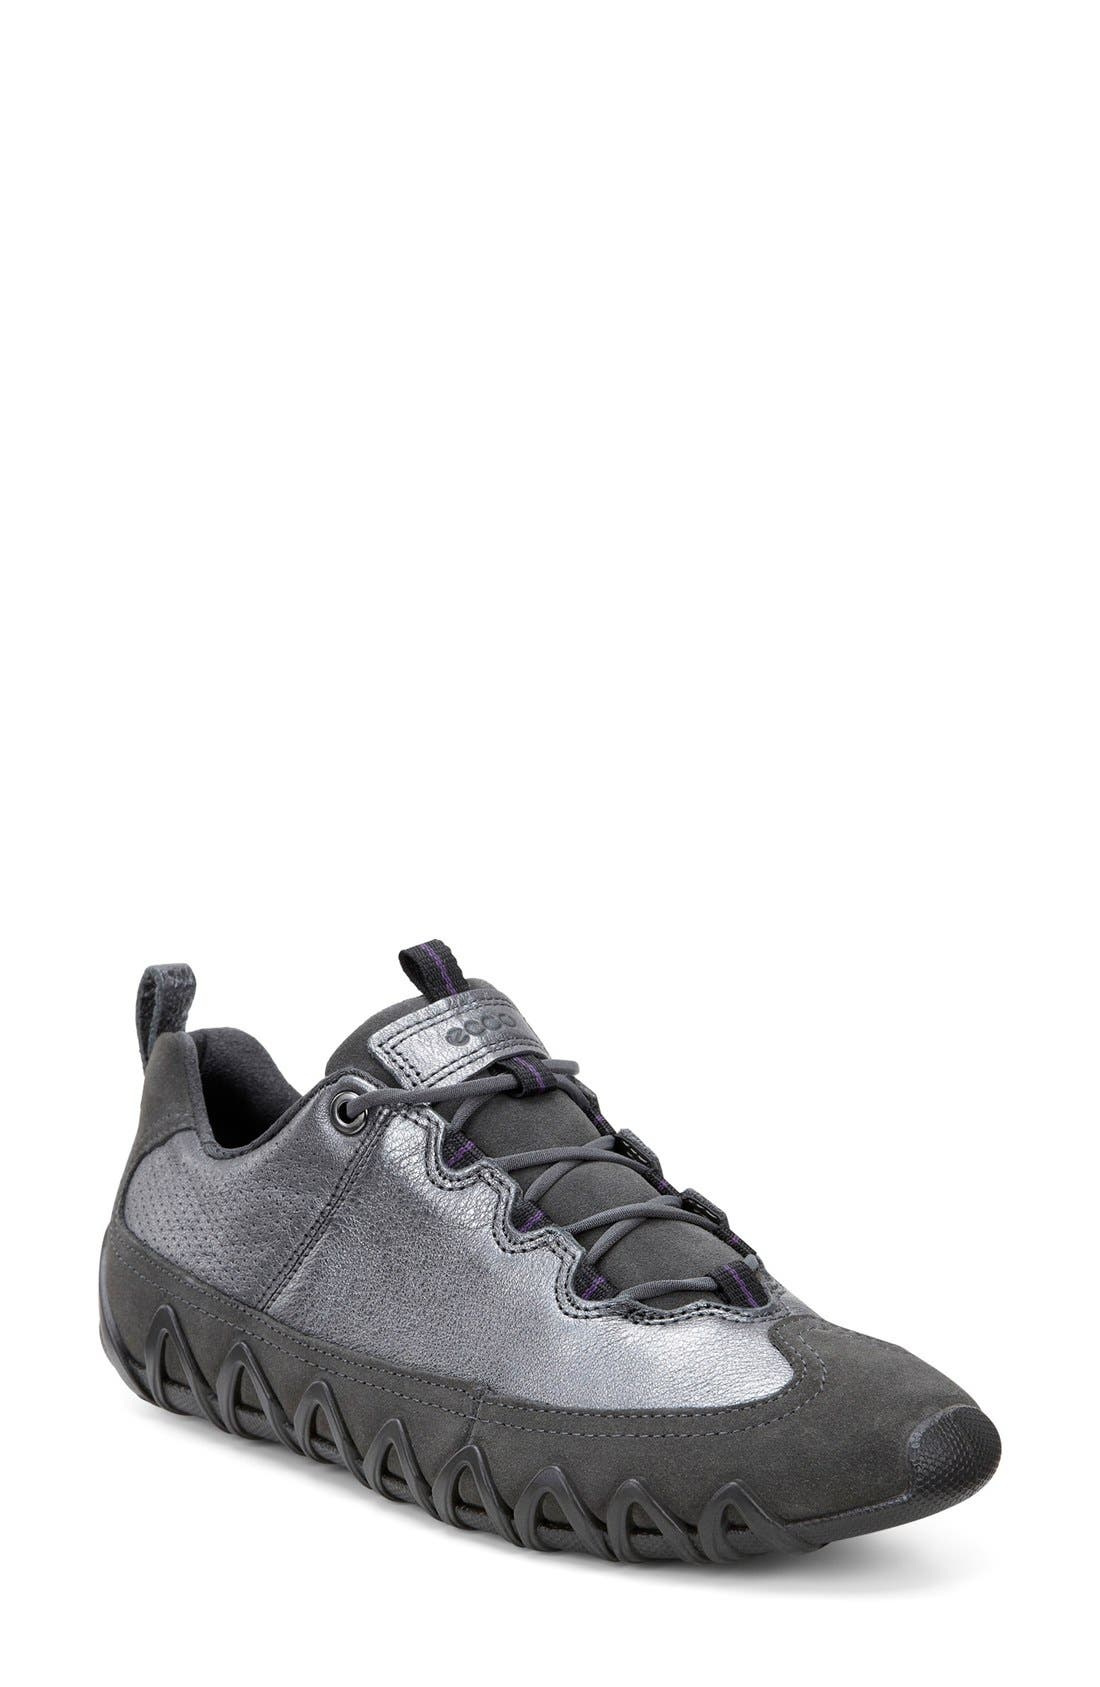 Alternate Image 1 Selected - ECCO 'Dayla' Toggle Sneaker (Women)